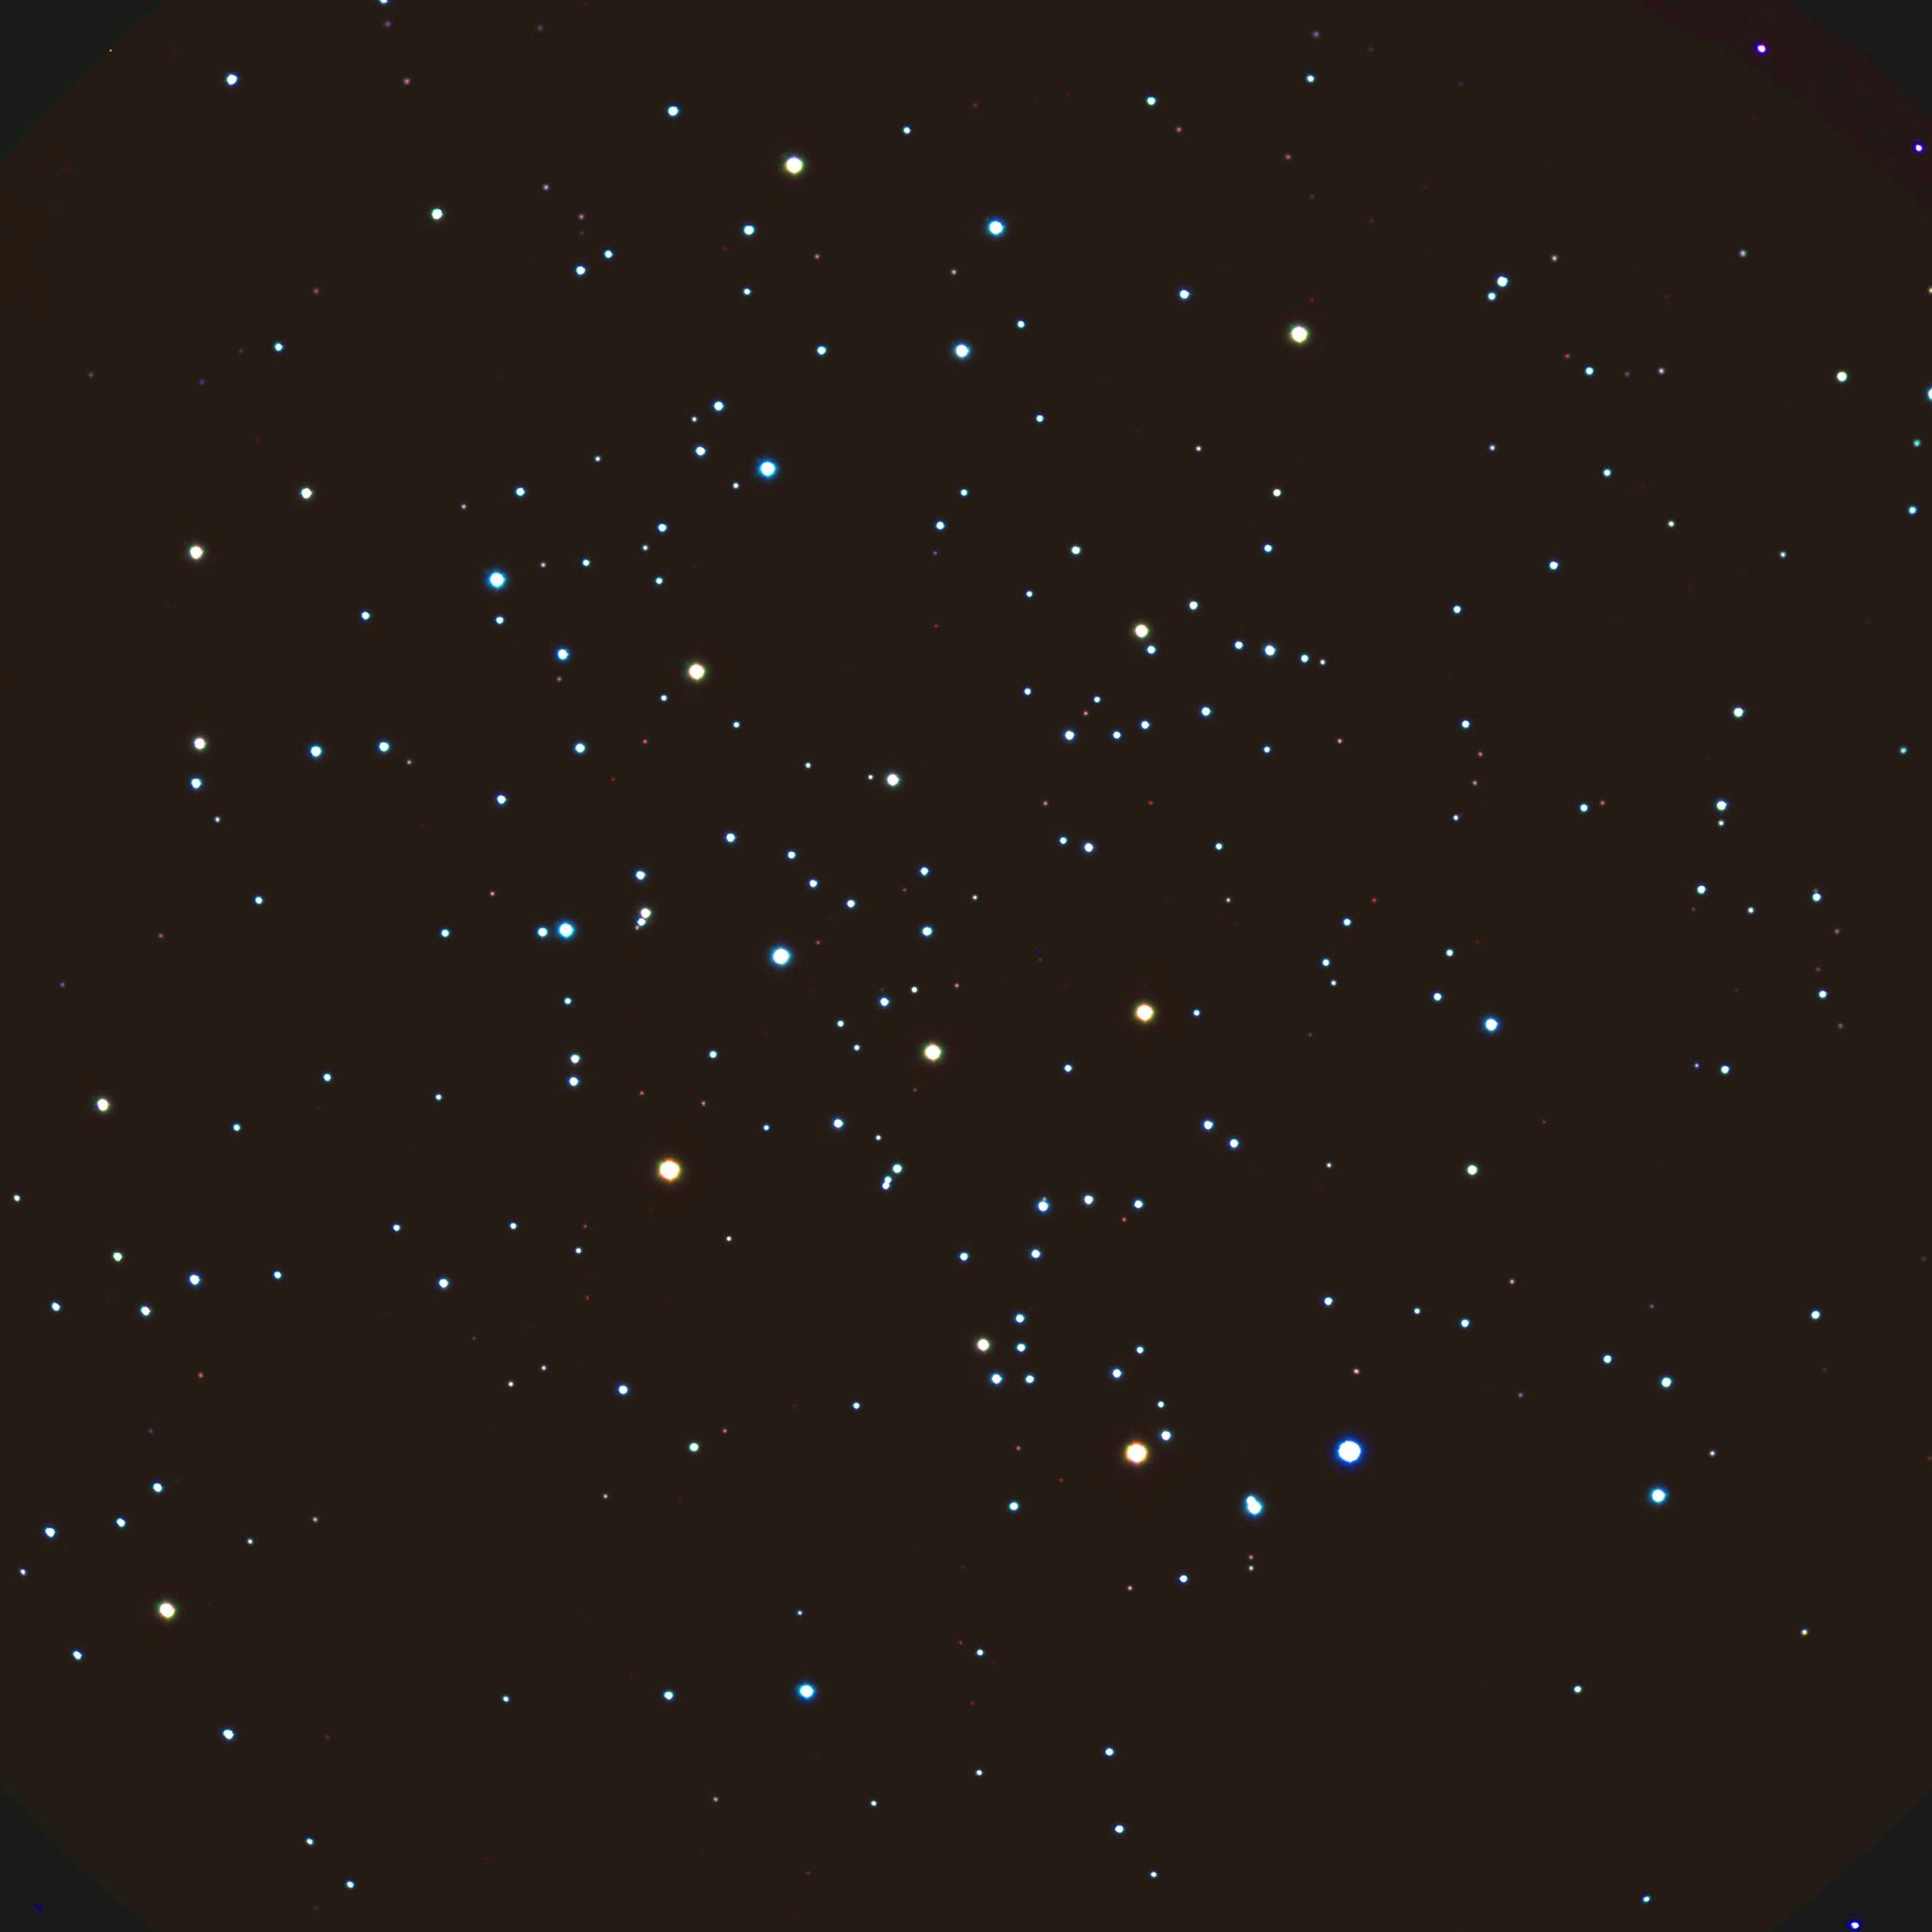 Open Cluster M67